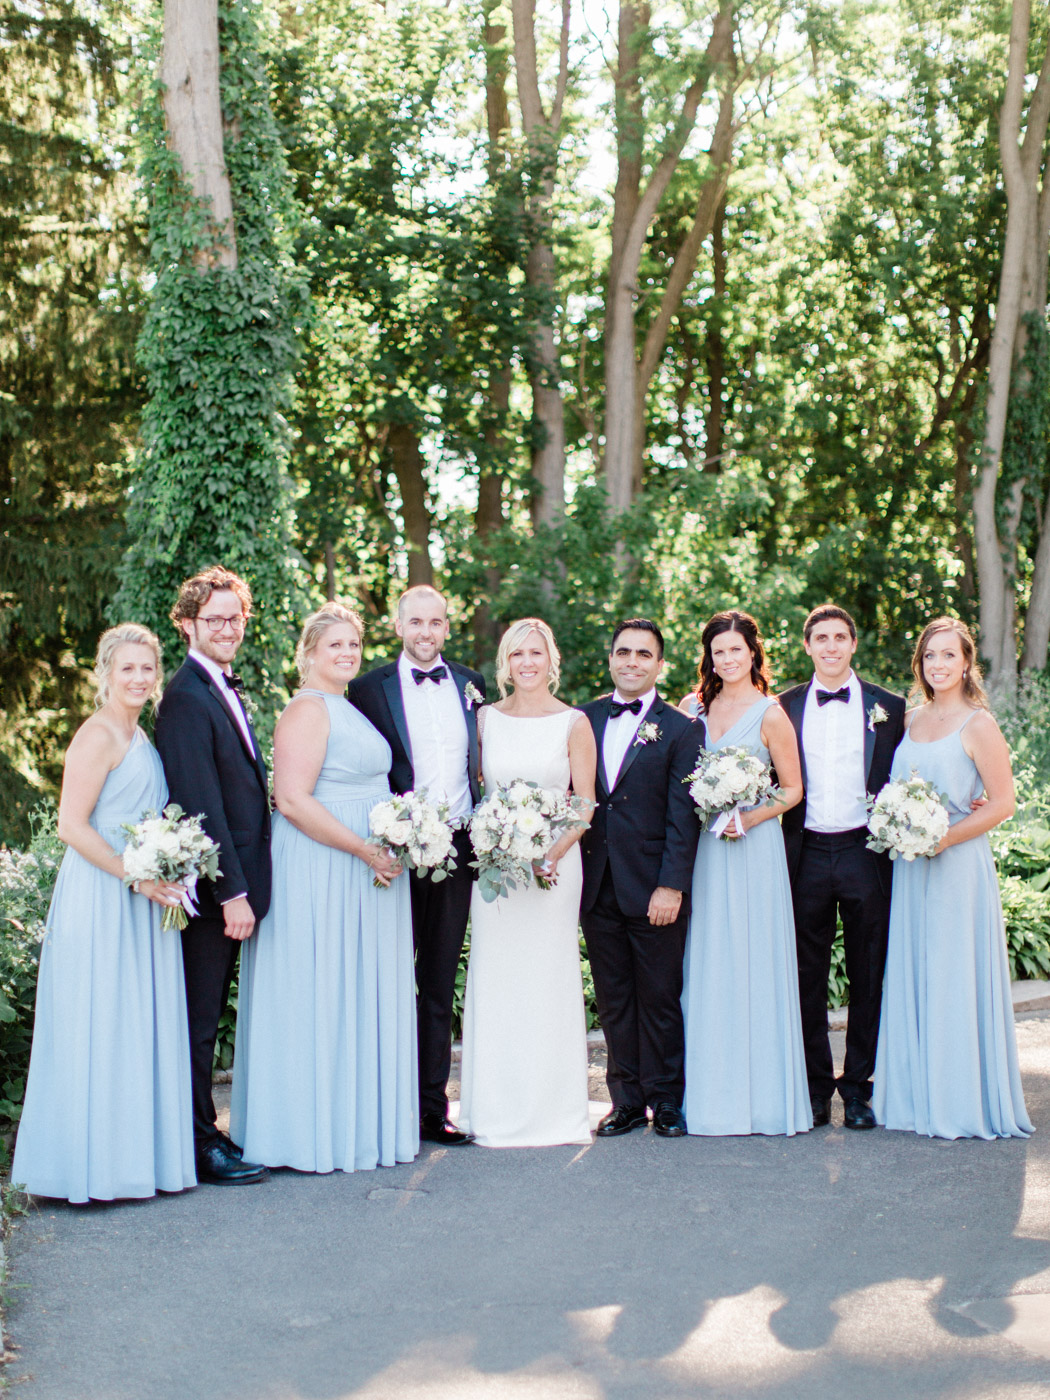 Photographs from an elegant yet relaxed summer wedding at The Thornhill Golf and Country Club, by Toronto Wedding Photographer Corynn Fowler Photography